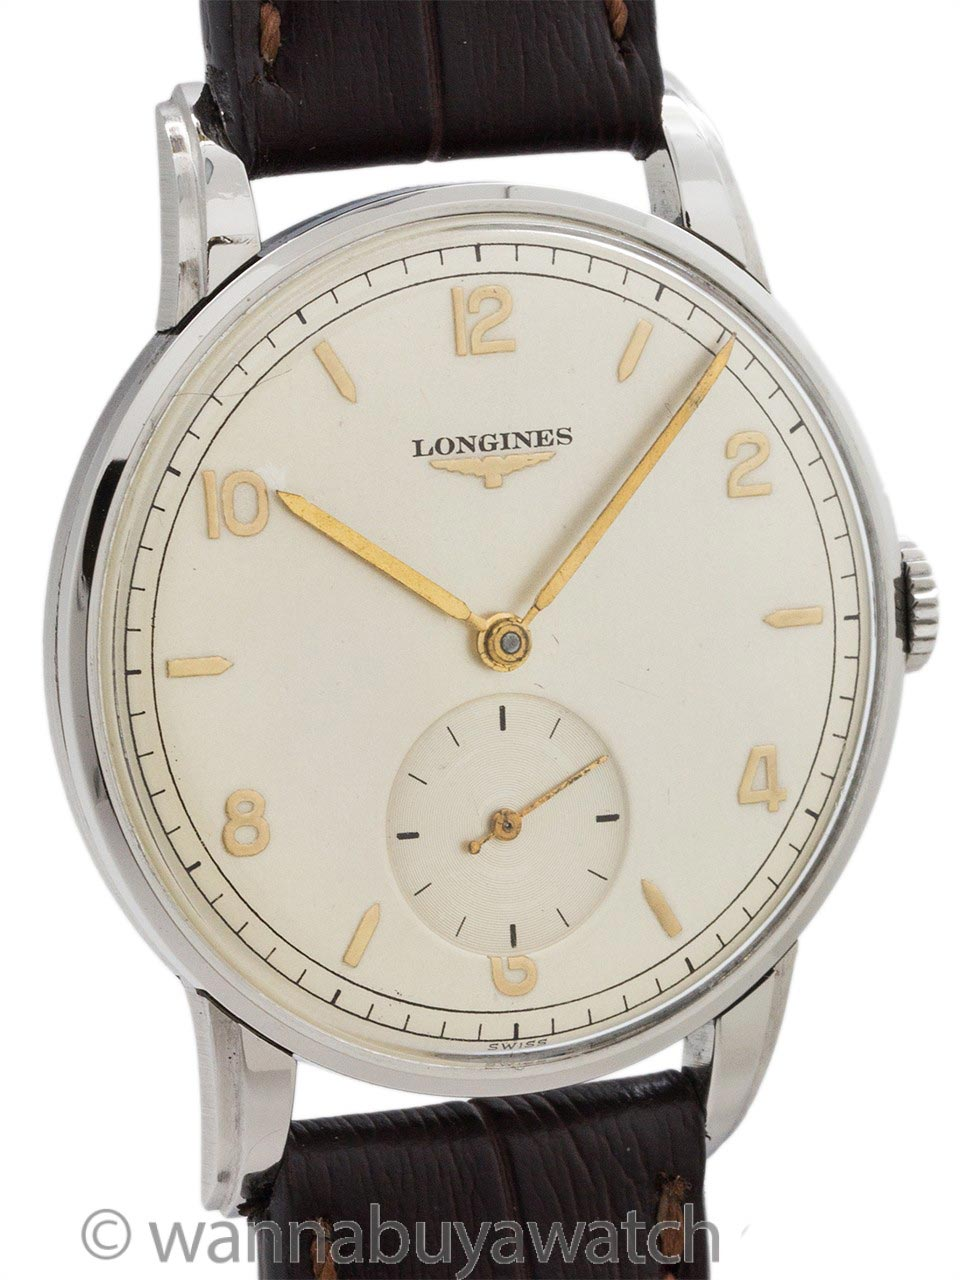 Longines Stainless Steel Dress Model circa 1950's